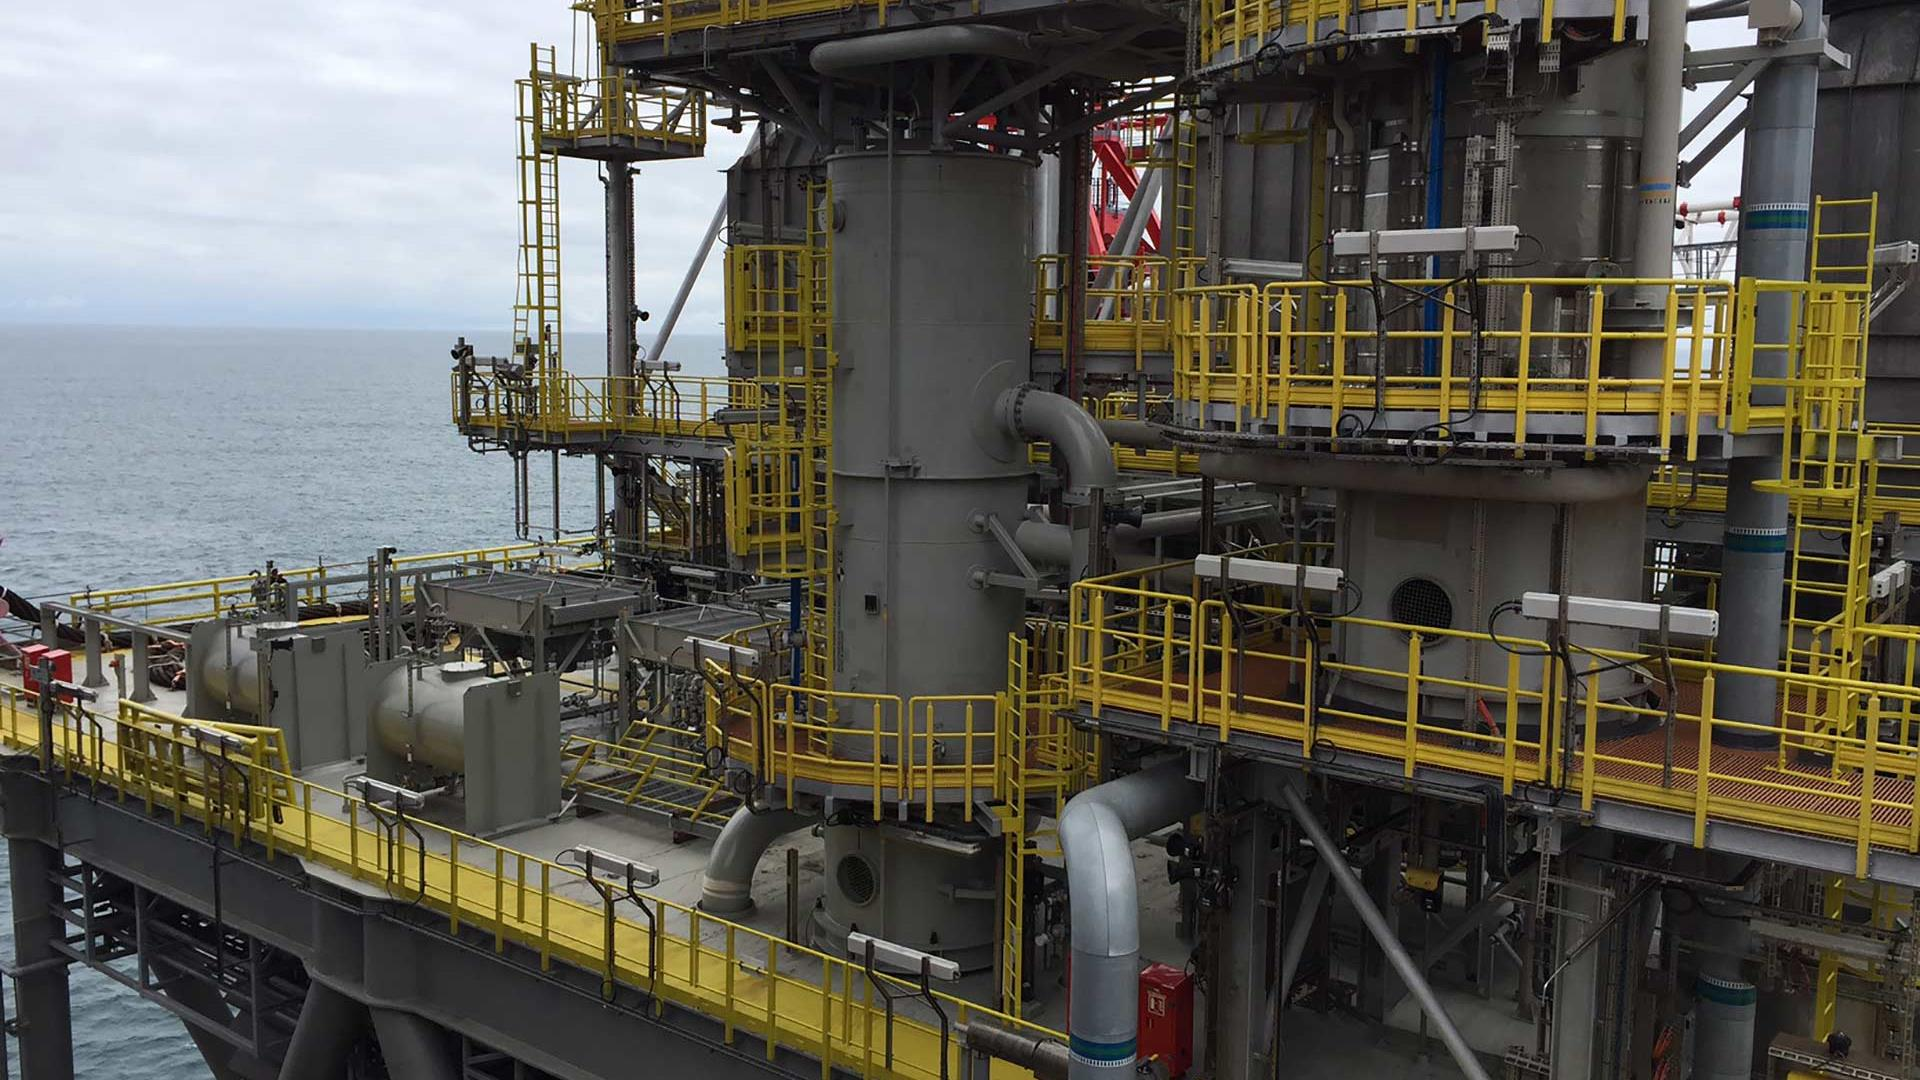 MARRS Offshore handrail in use on the BP Clair Ridge platform in the North Sea